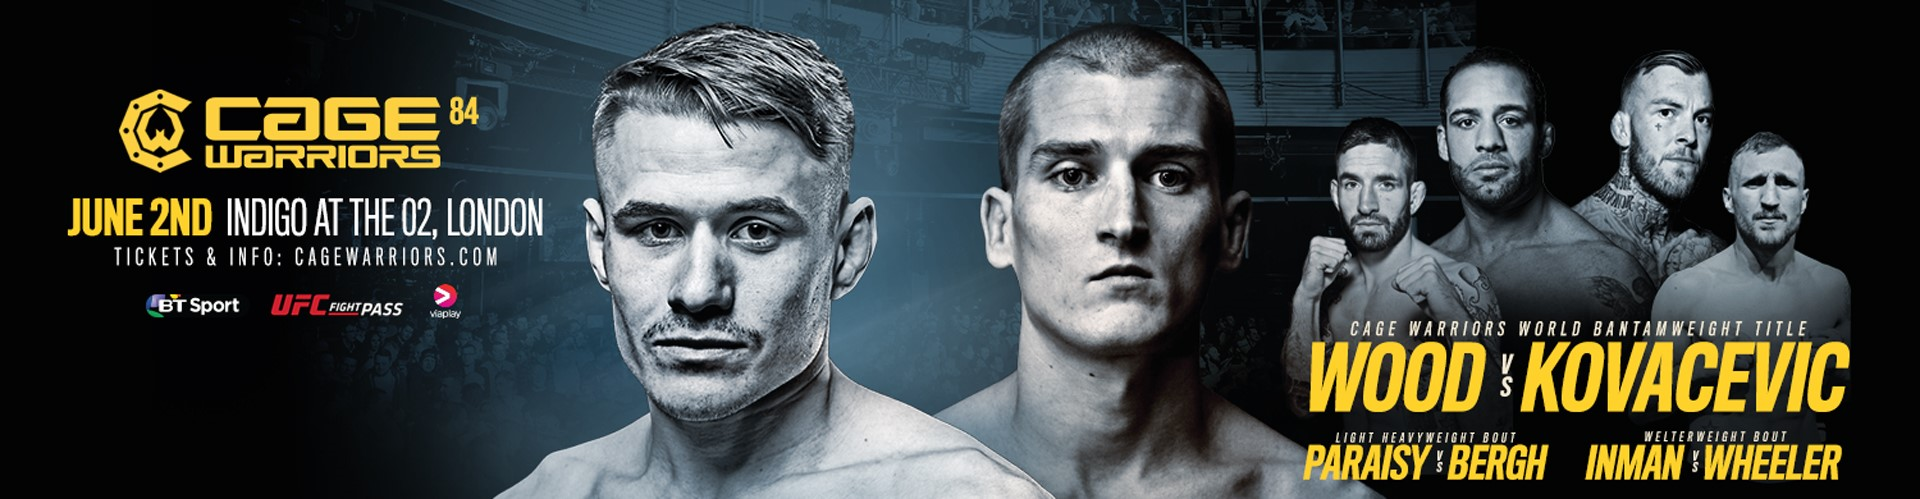 Cage Warriors 84